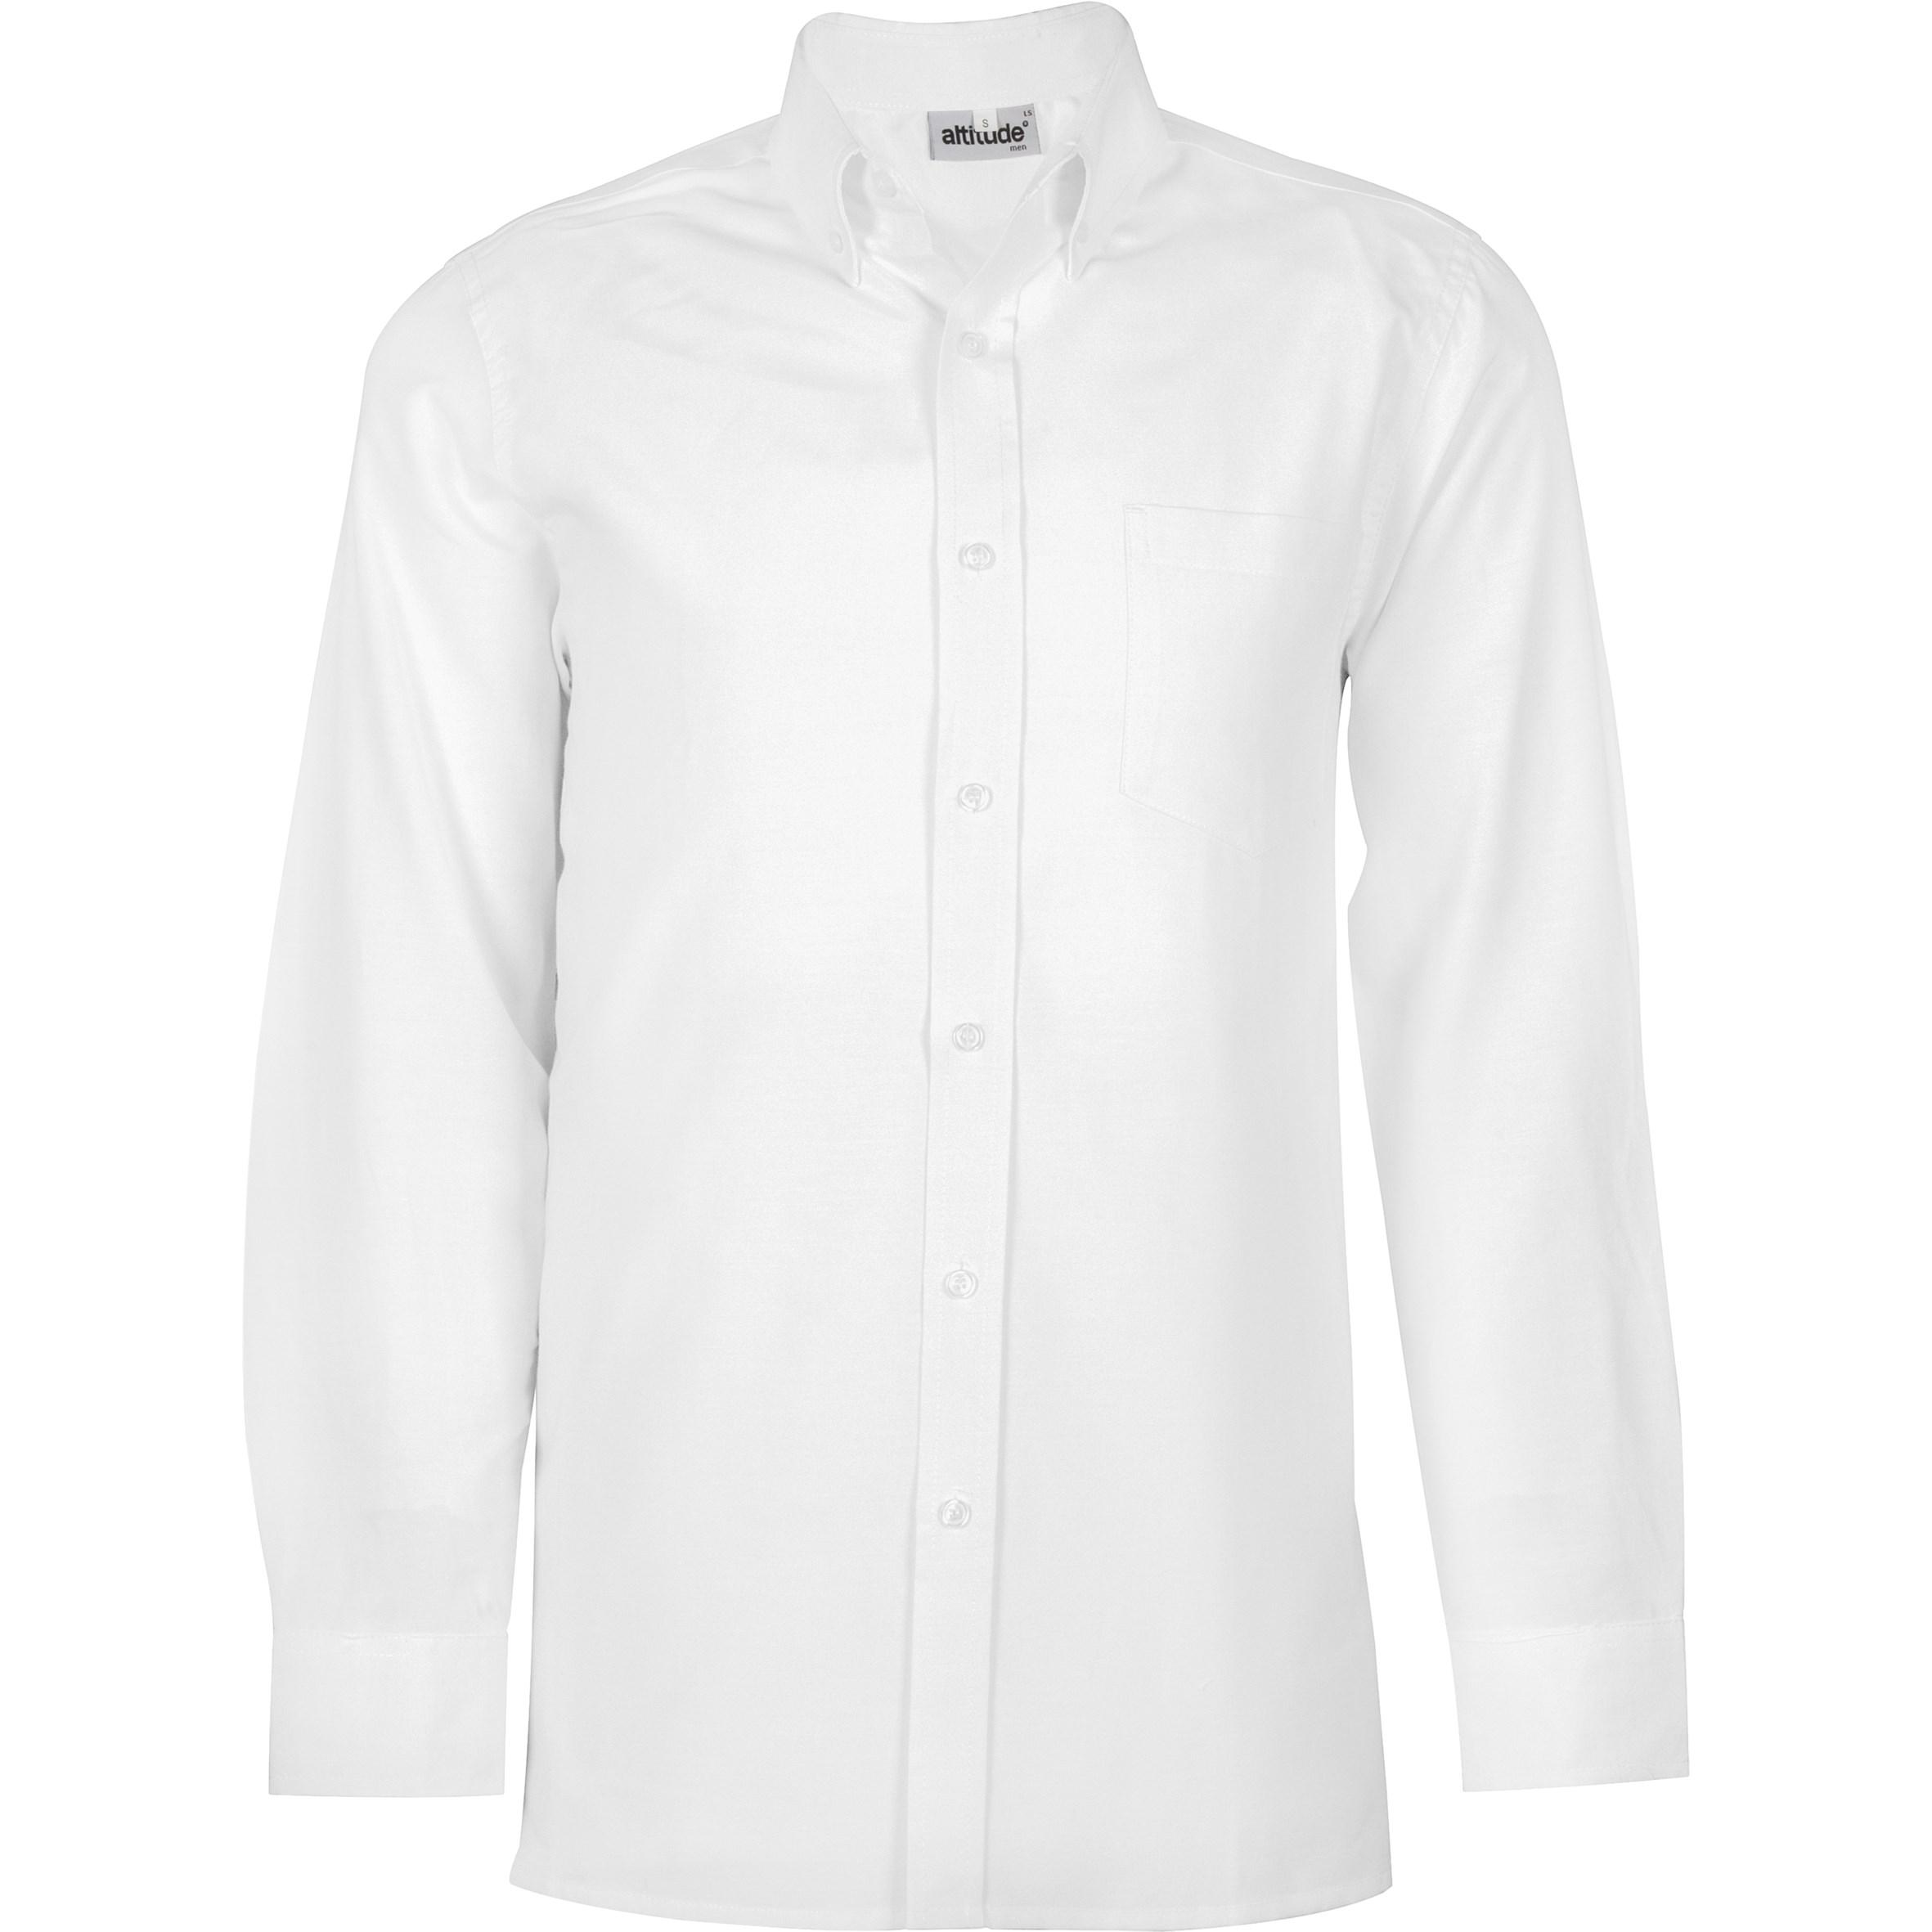 Mens Long Sleeve Oxford Shirt -white Only